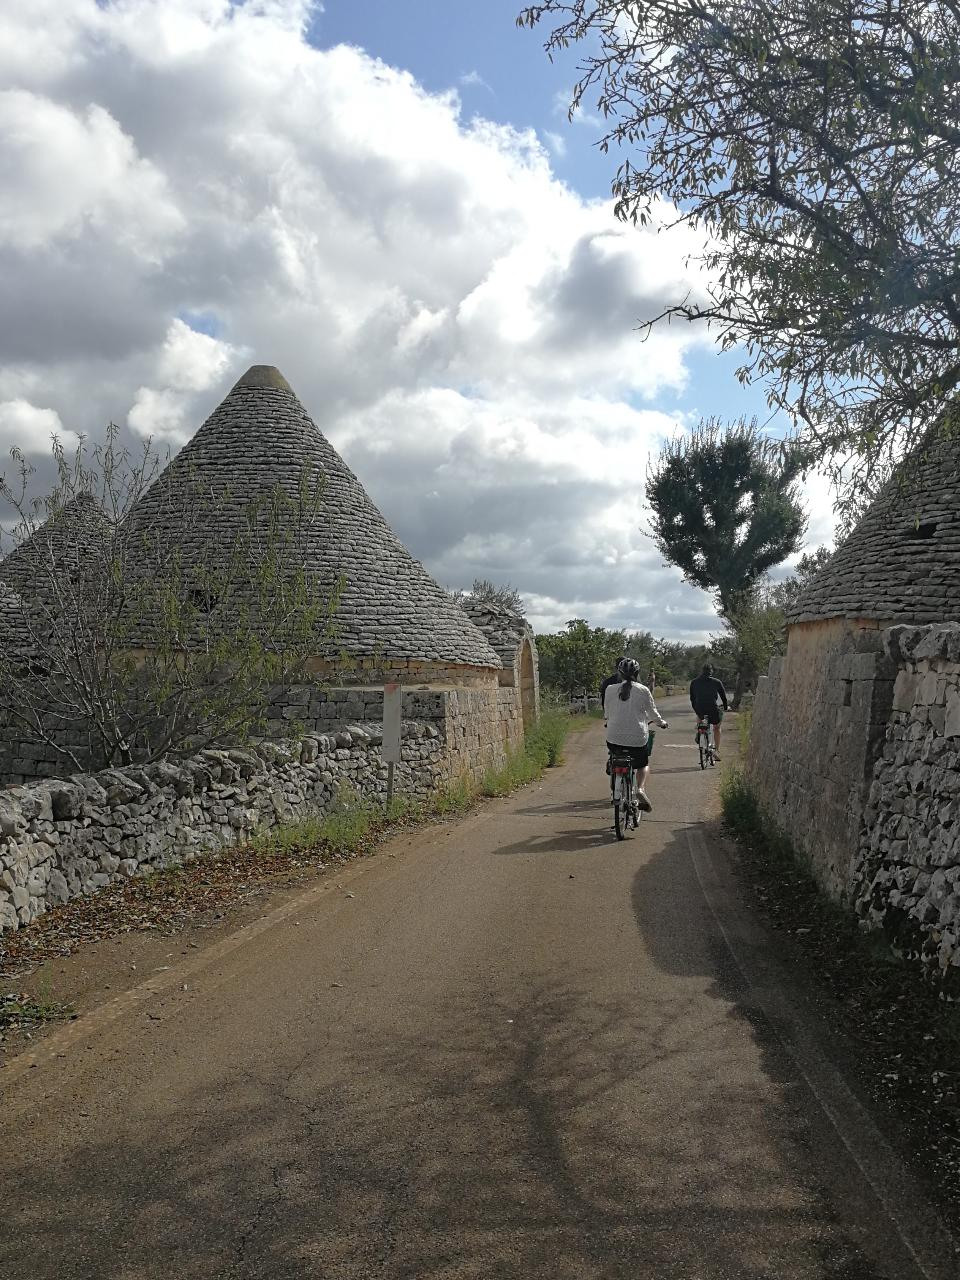 Bike tour: From the old town to the olive oil mill